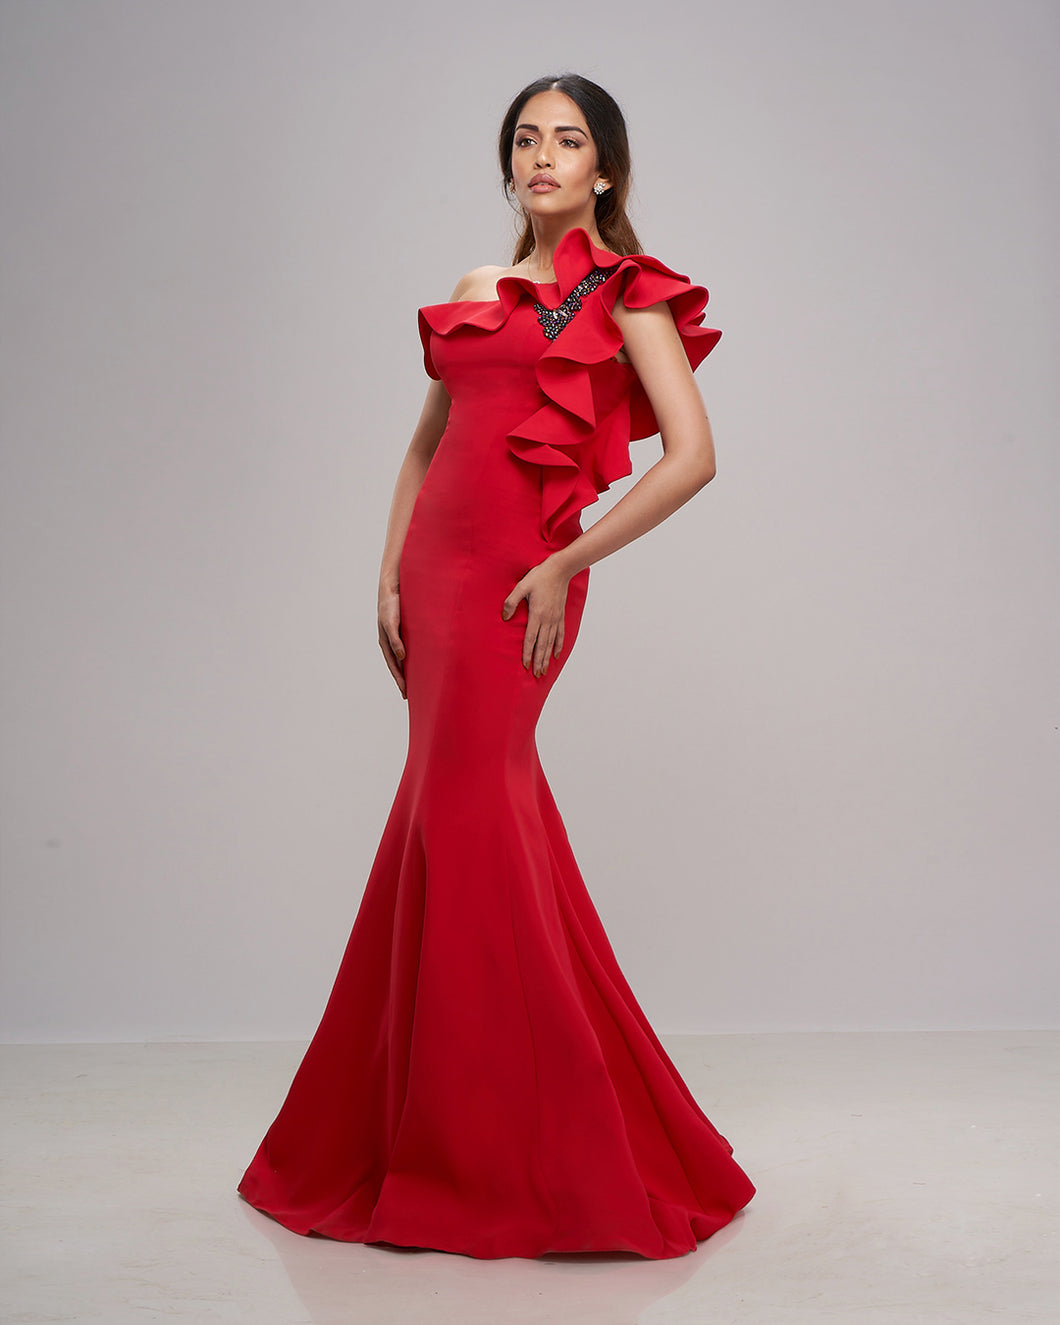 The Ruffle Red Gown